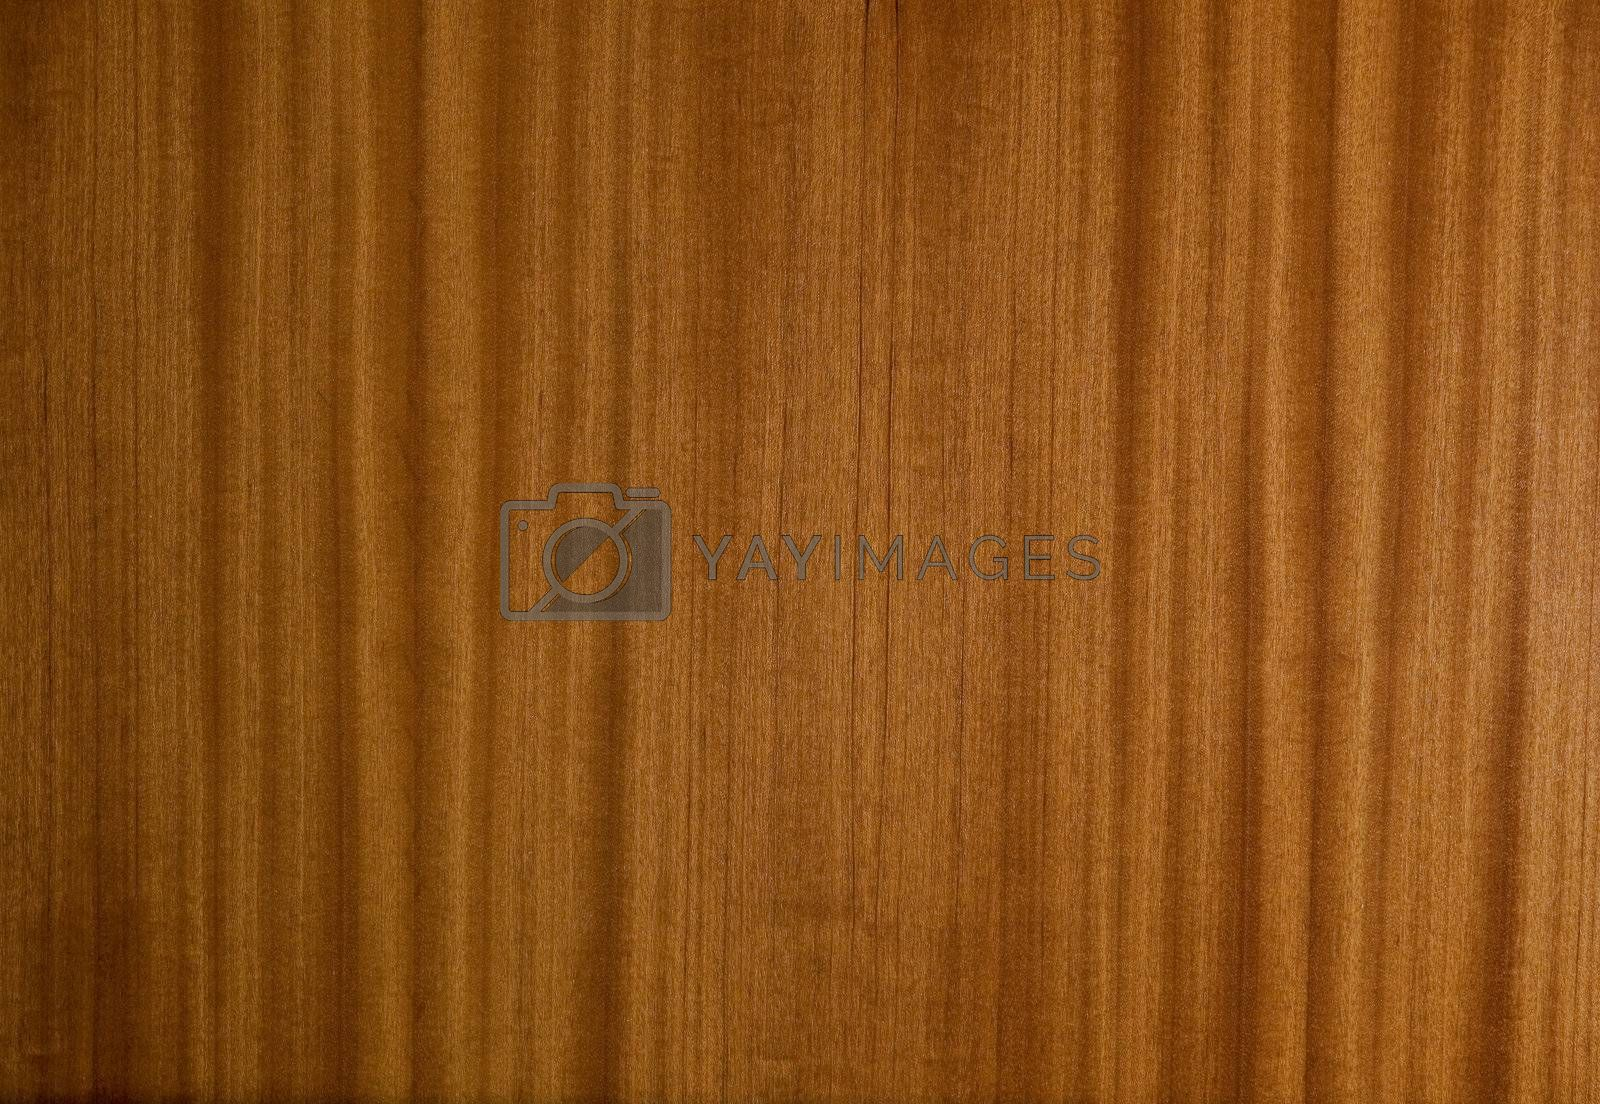 A dark stained wood texture - very detailed